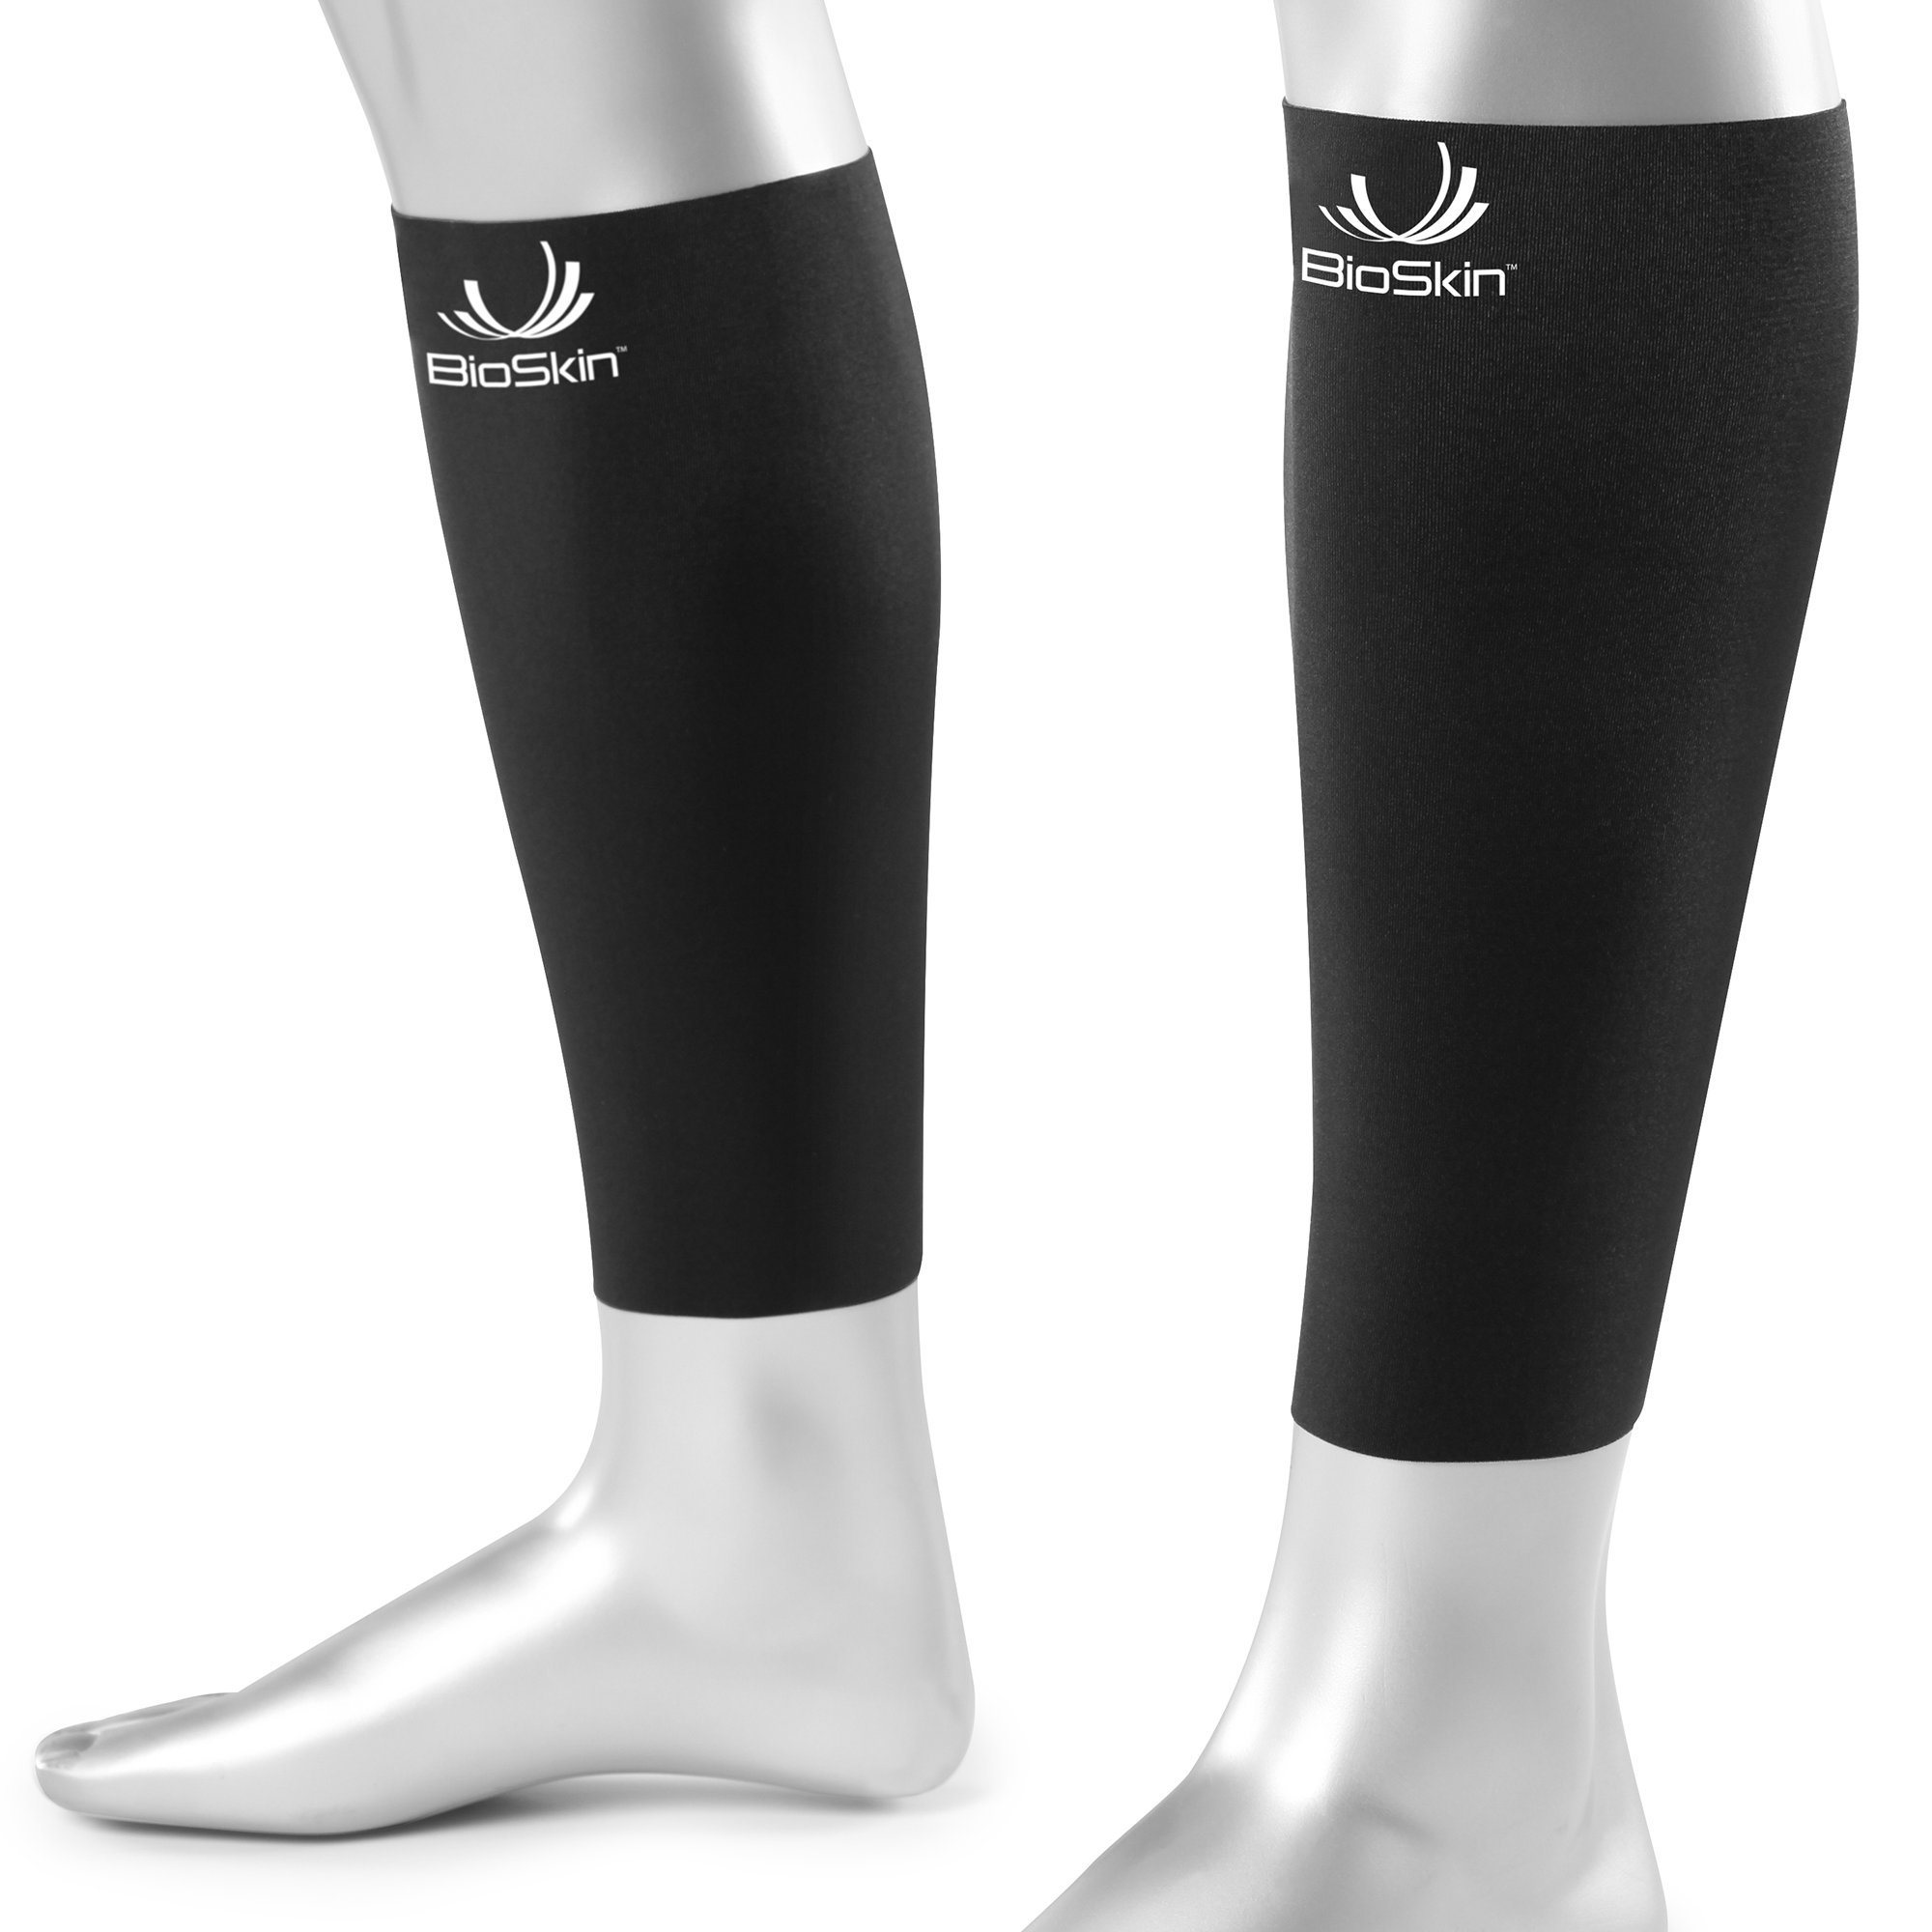 BioSkin Calf Sleeve - Compression Calf Sleeves - Medical Grade Compression - Hypoalergenic - Breathable - XXLarge (Pair)